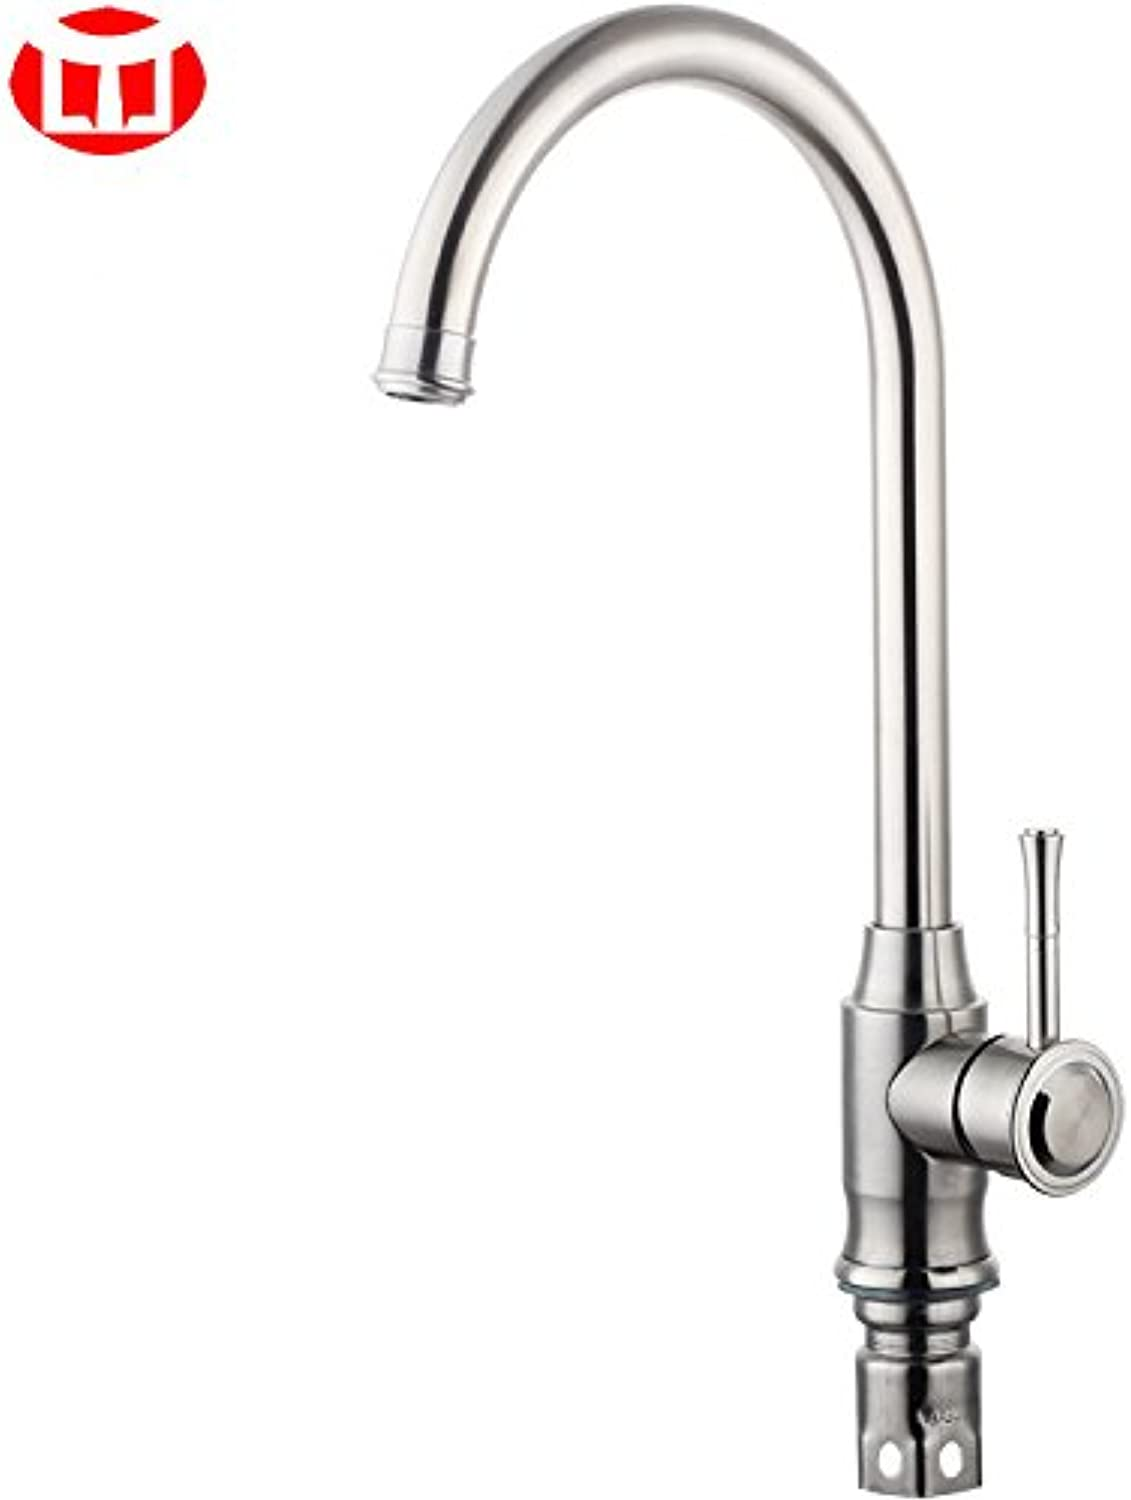 Gyps Faucet Basin Mixer Tap Waterfall Faucet Antique Bathroom Kitchen faucet kitchen stainless steel cold water slot redating faucet brushed C010 Bathroom Tub Lever Faucet